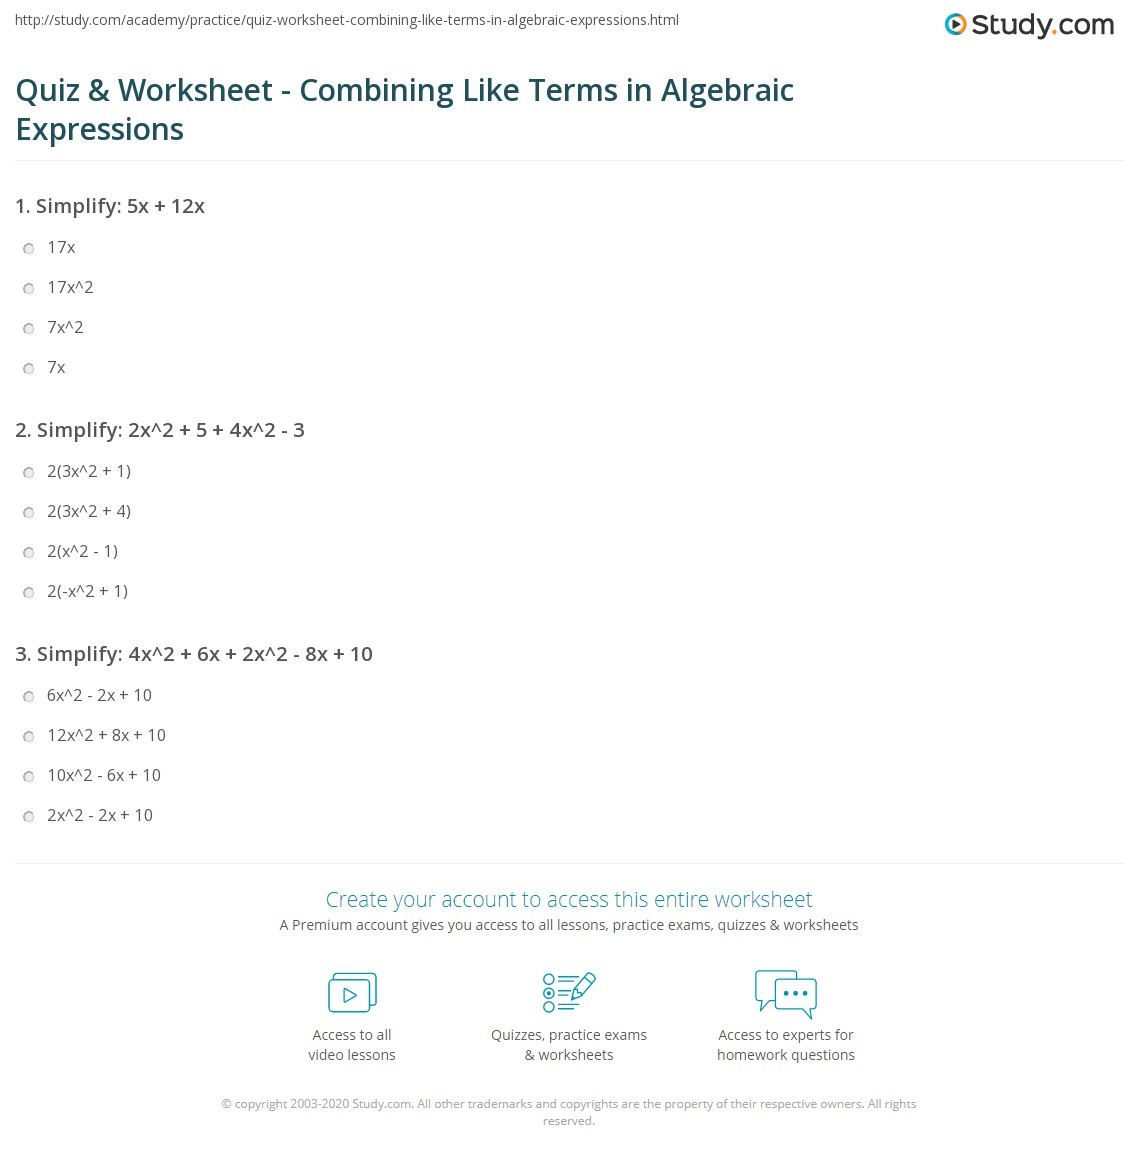 Uncategorized Combine Like Terms Worksheet quiz worksheet combining like terms in algebraic expressions print worksheet